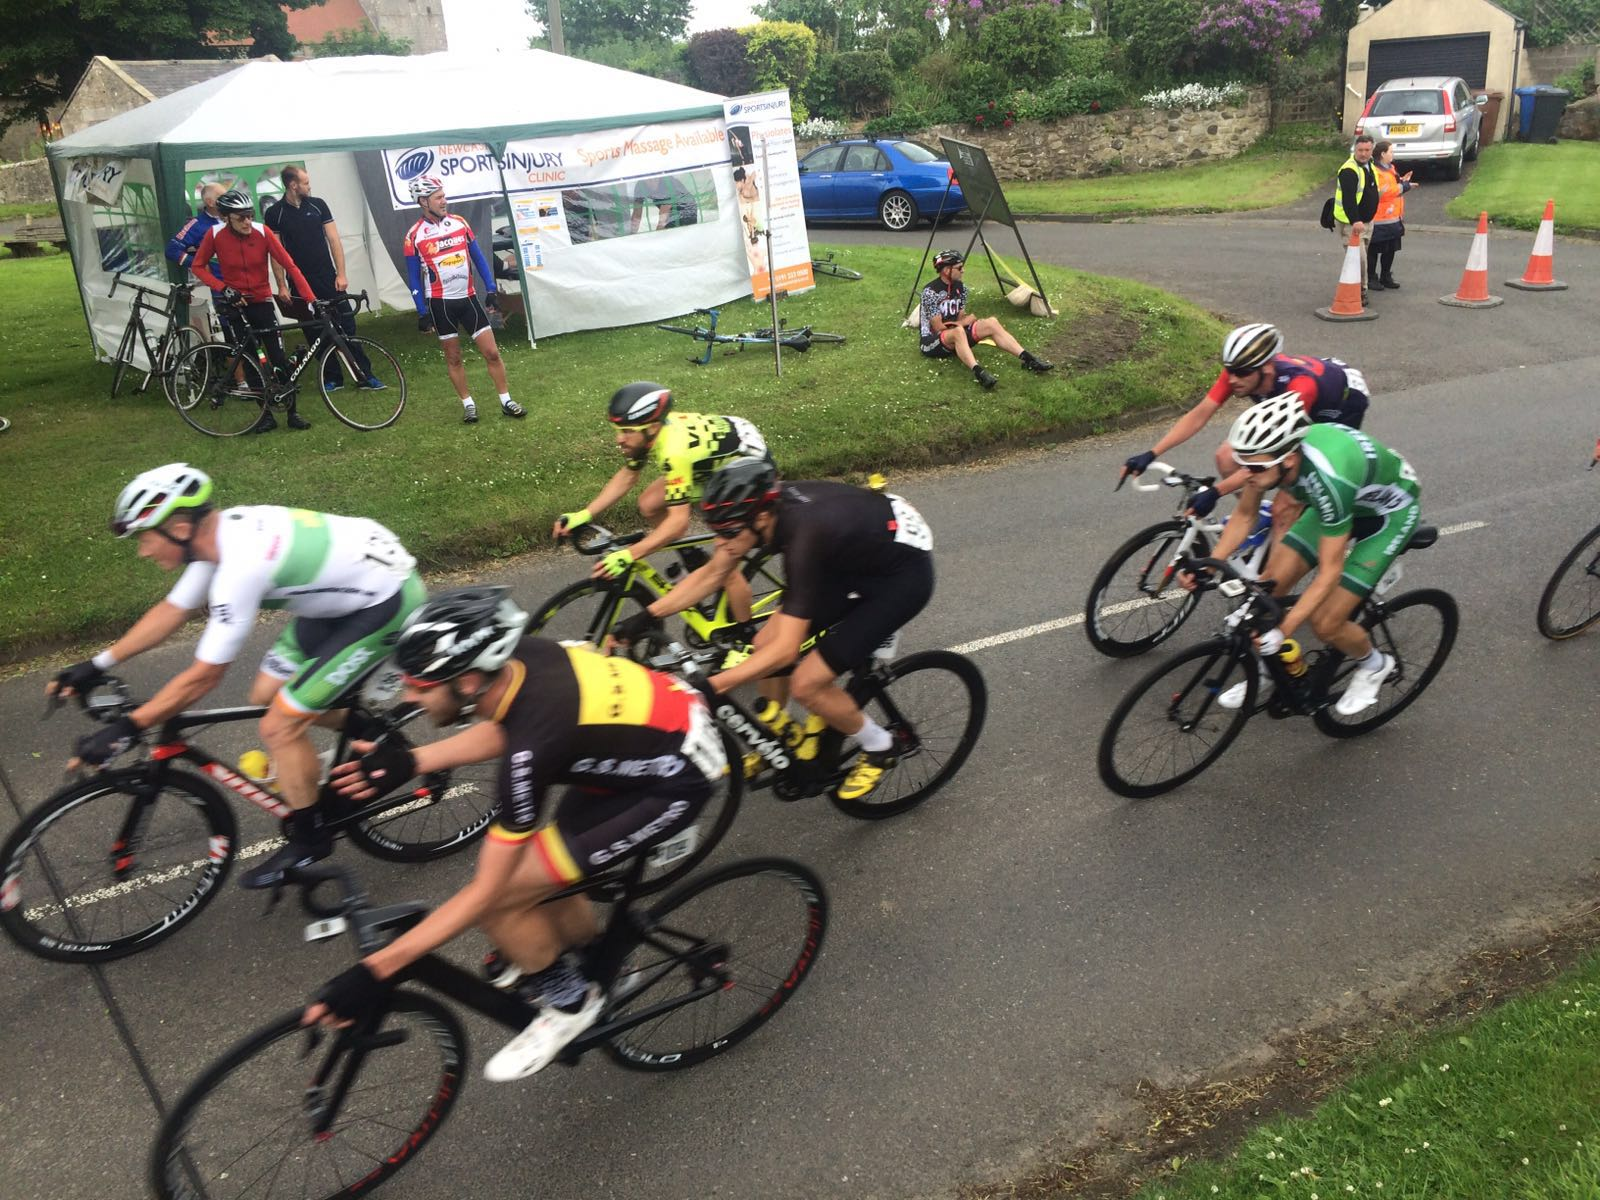 Newcastle Sports Injury Clinic supports riders at Cyclone Festival of Cycling